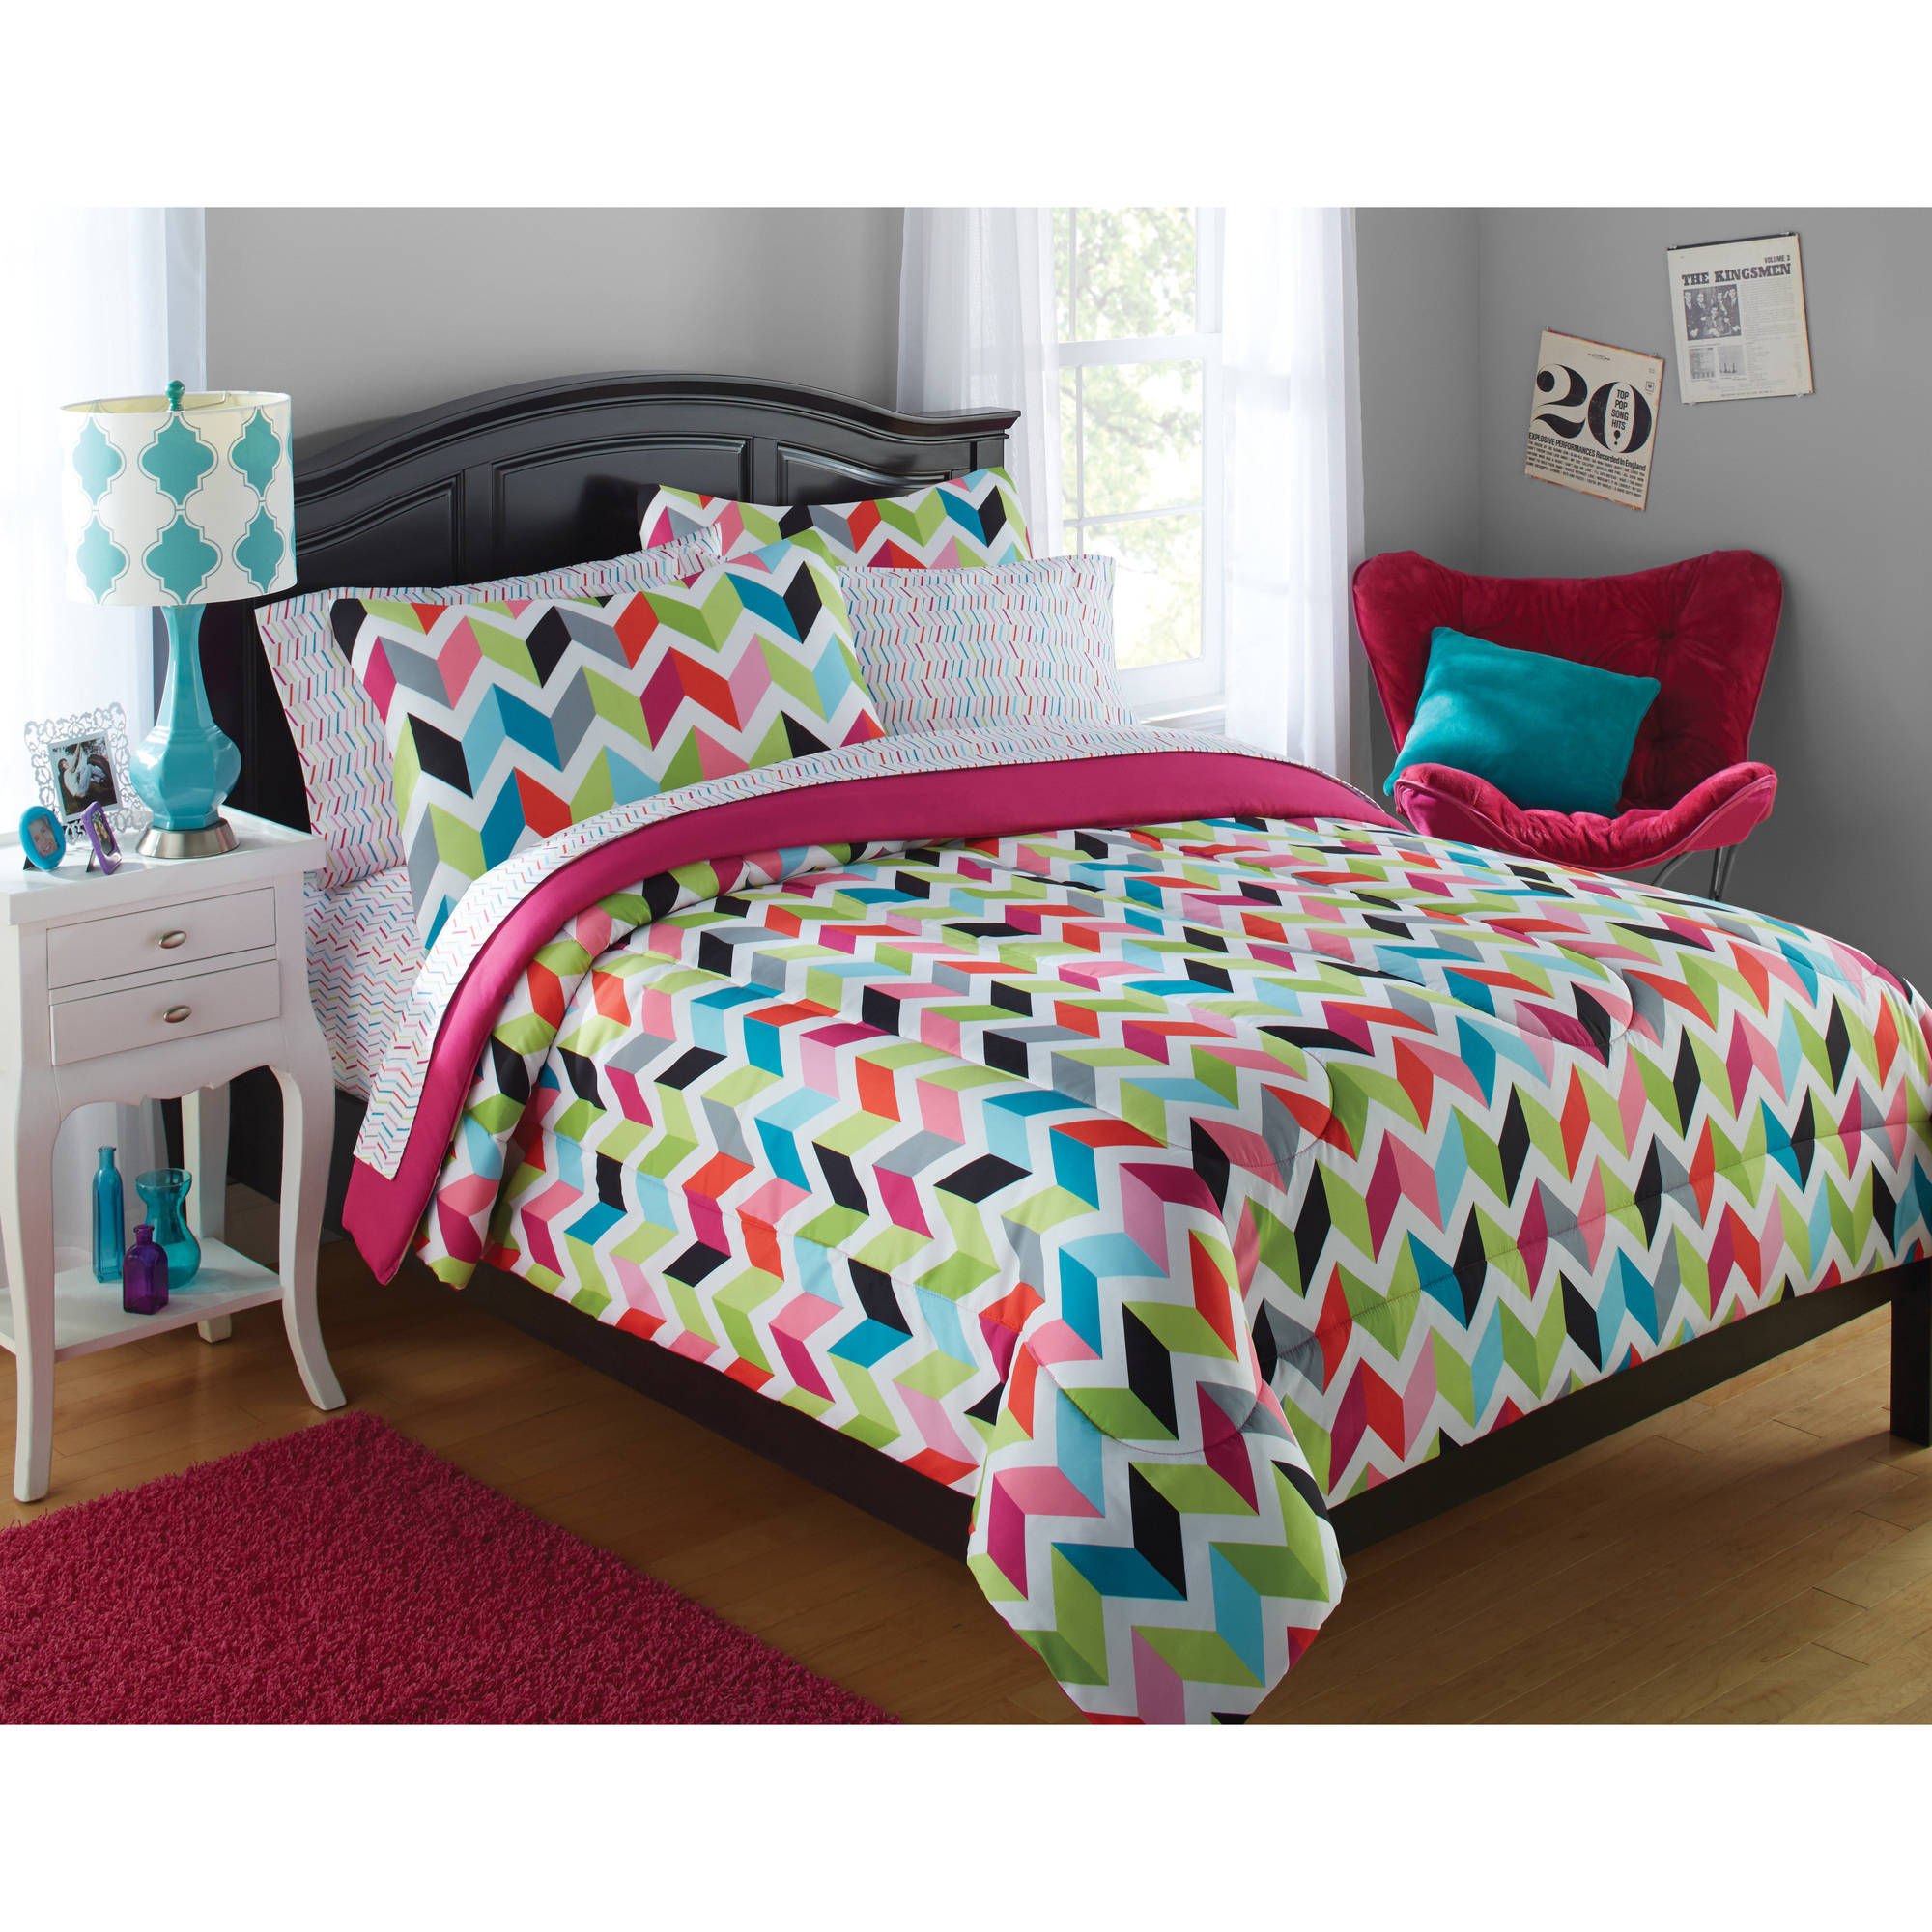 Your Zone Bright Chevron Print Bed in a Bag Set, 1 Each